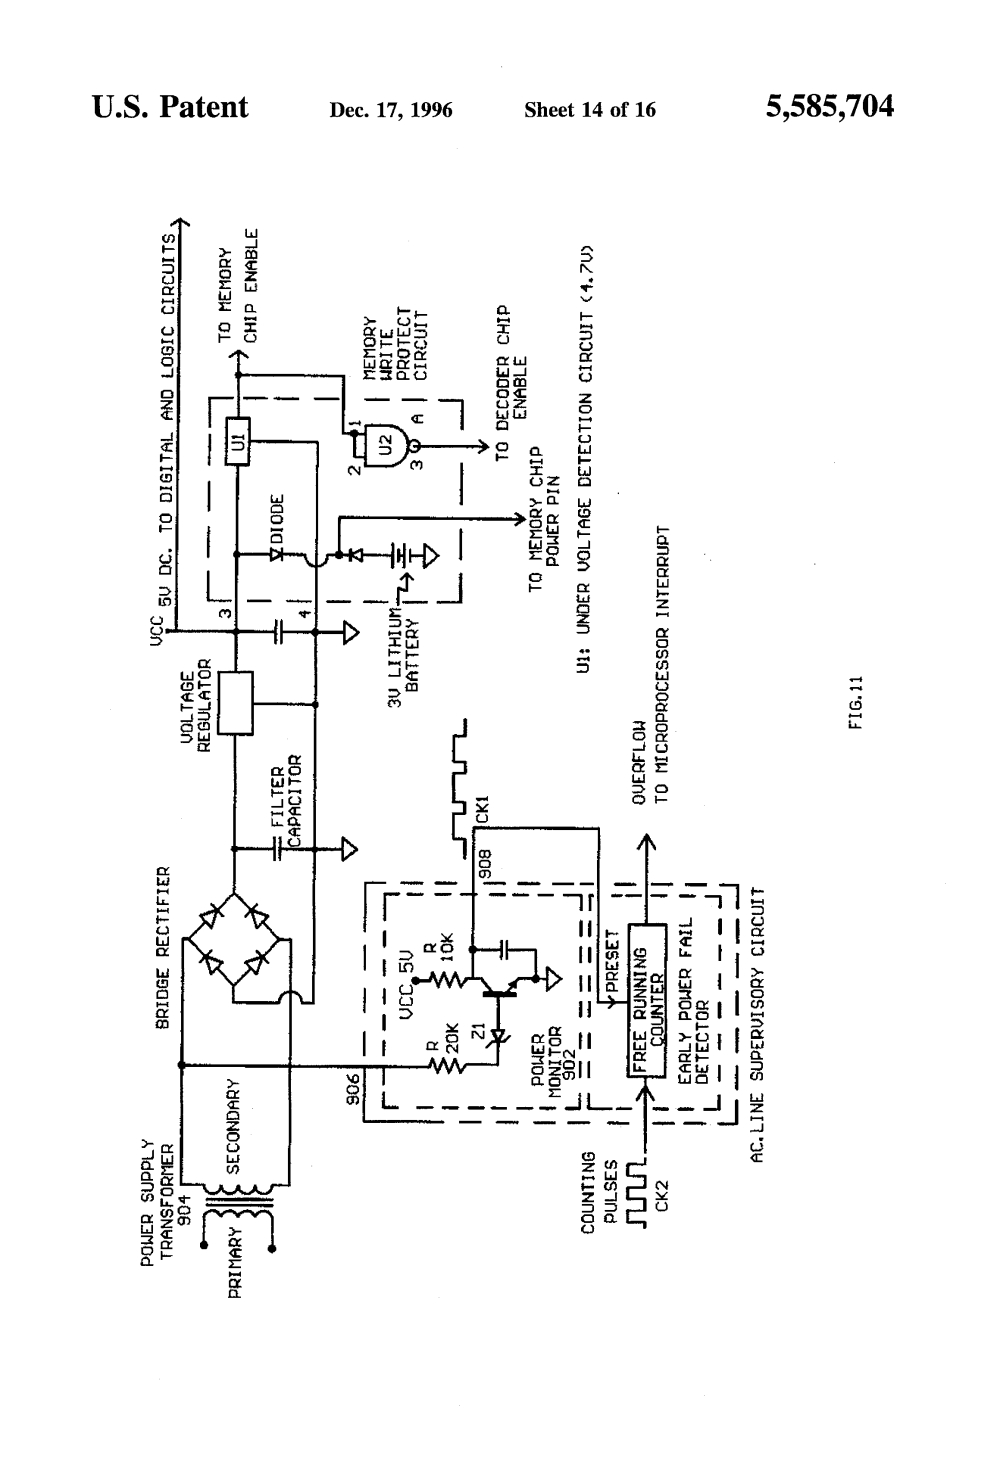 medium resolution of us5585704 14 patent us5585704 computer means for commercial washing machines lg semi automatic washing machine wiring